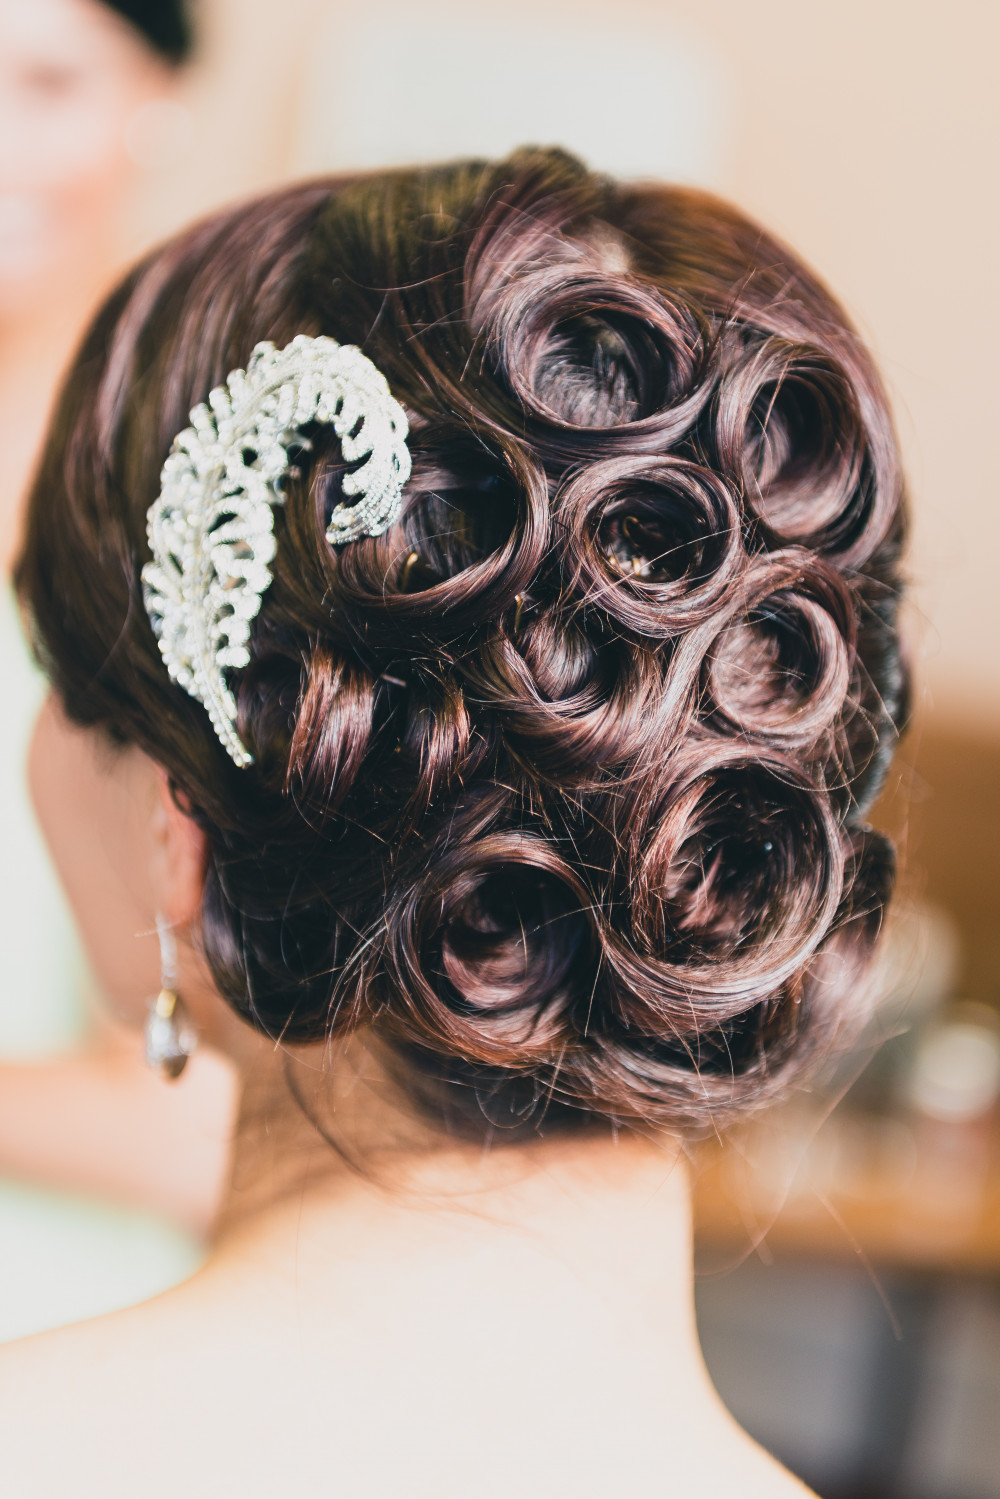 - Make Me Bridal Artist: Pretty Please by Katie. #vintage #hairup #swirls #romantic